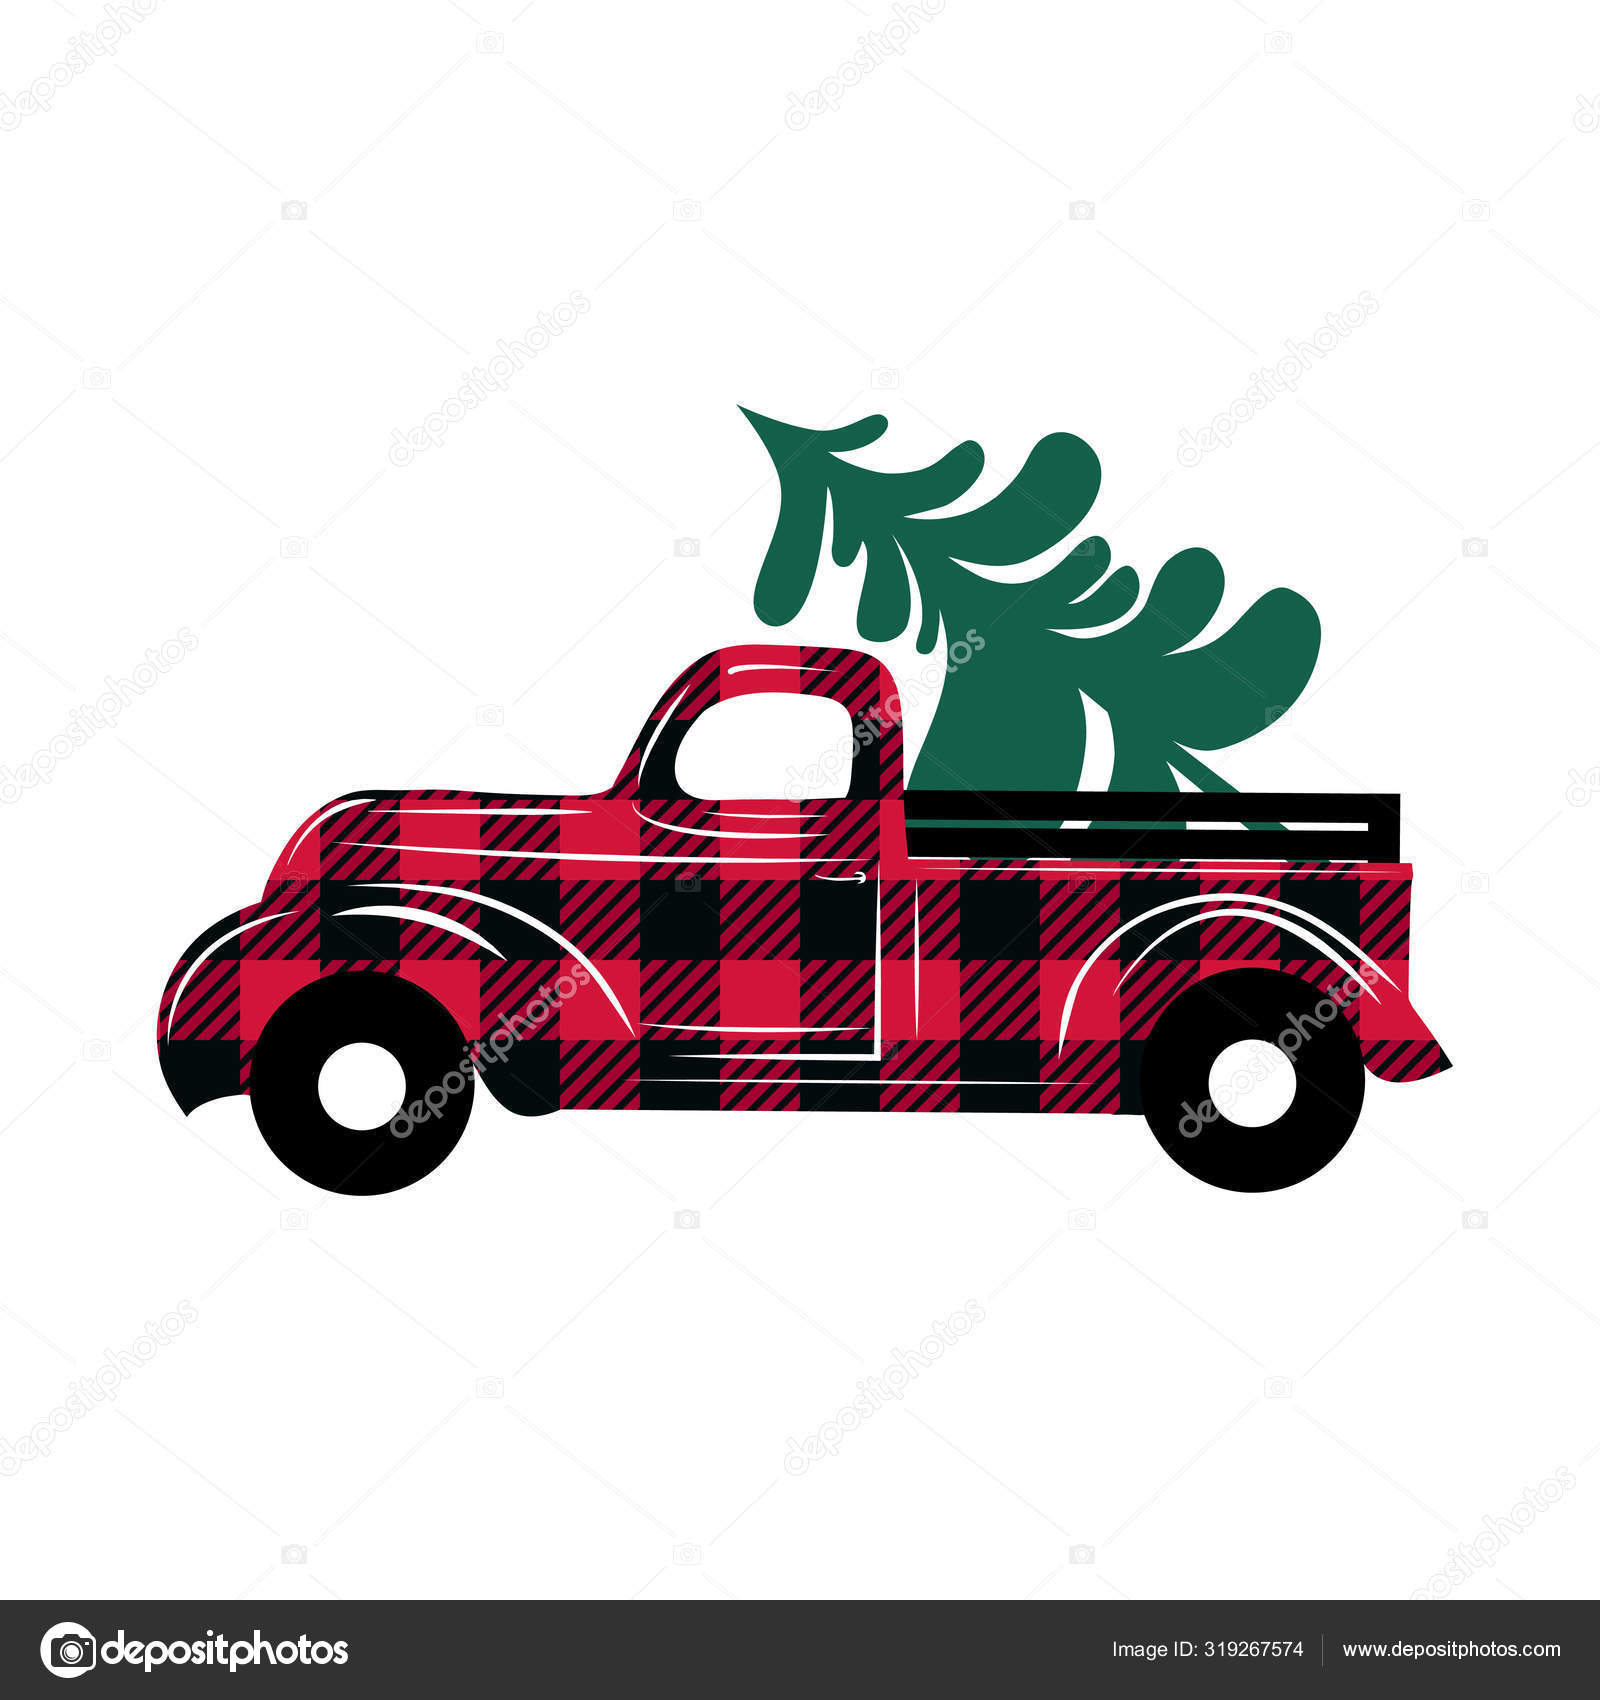 Red Checkered Truck Delivers Christmas Tree Christmas Truck Illustration Cartoon Stock Vector C Chempina 319267574 Christmas stickers, christmas truck stickers, print n cut, christmas trees stickers, christmas farm stickers, red truck, christmas truck red checkered truck delivers christmas tree christmas truck illustration cartoon stock vector c chempina 319267574